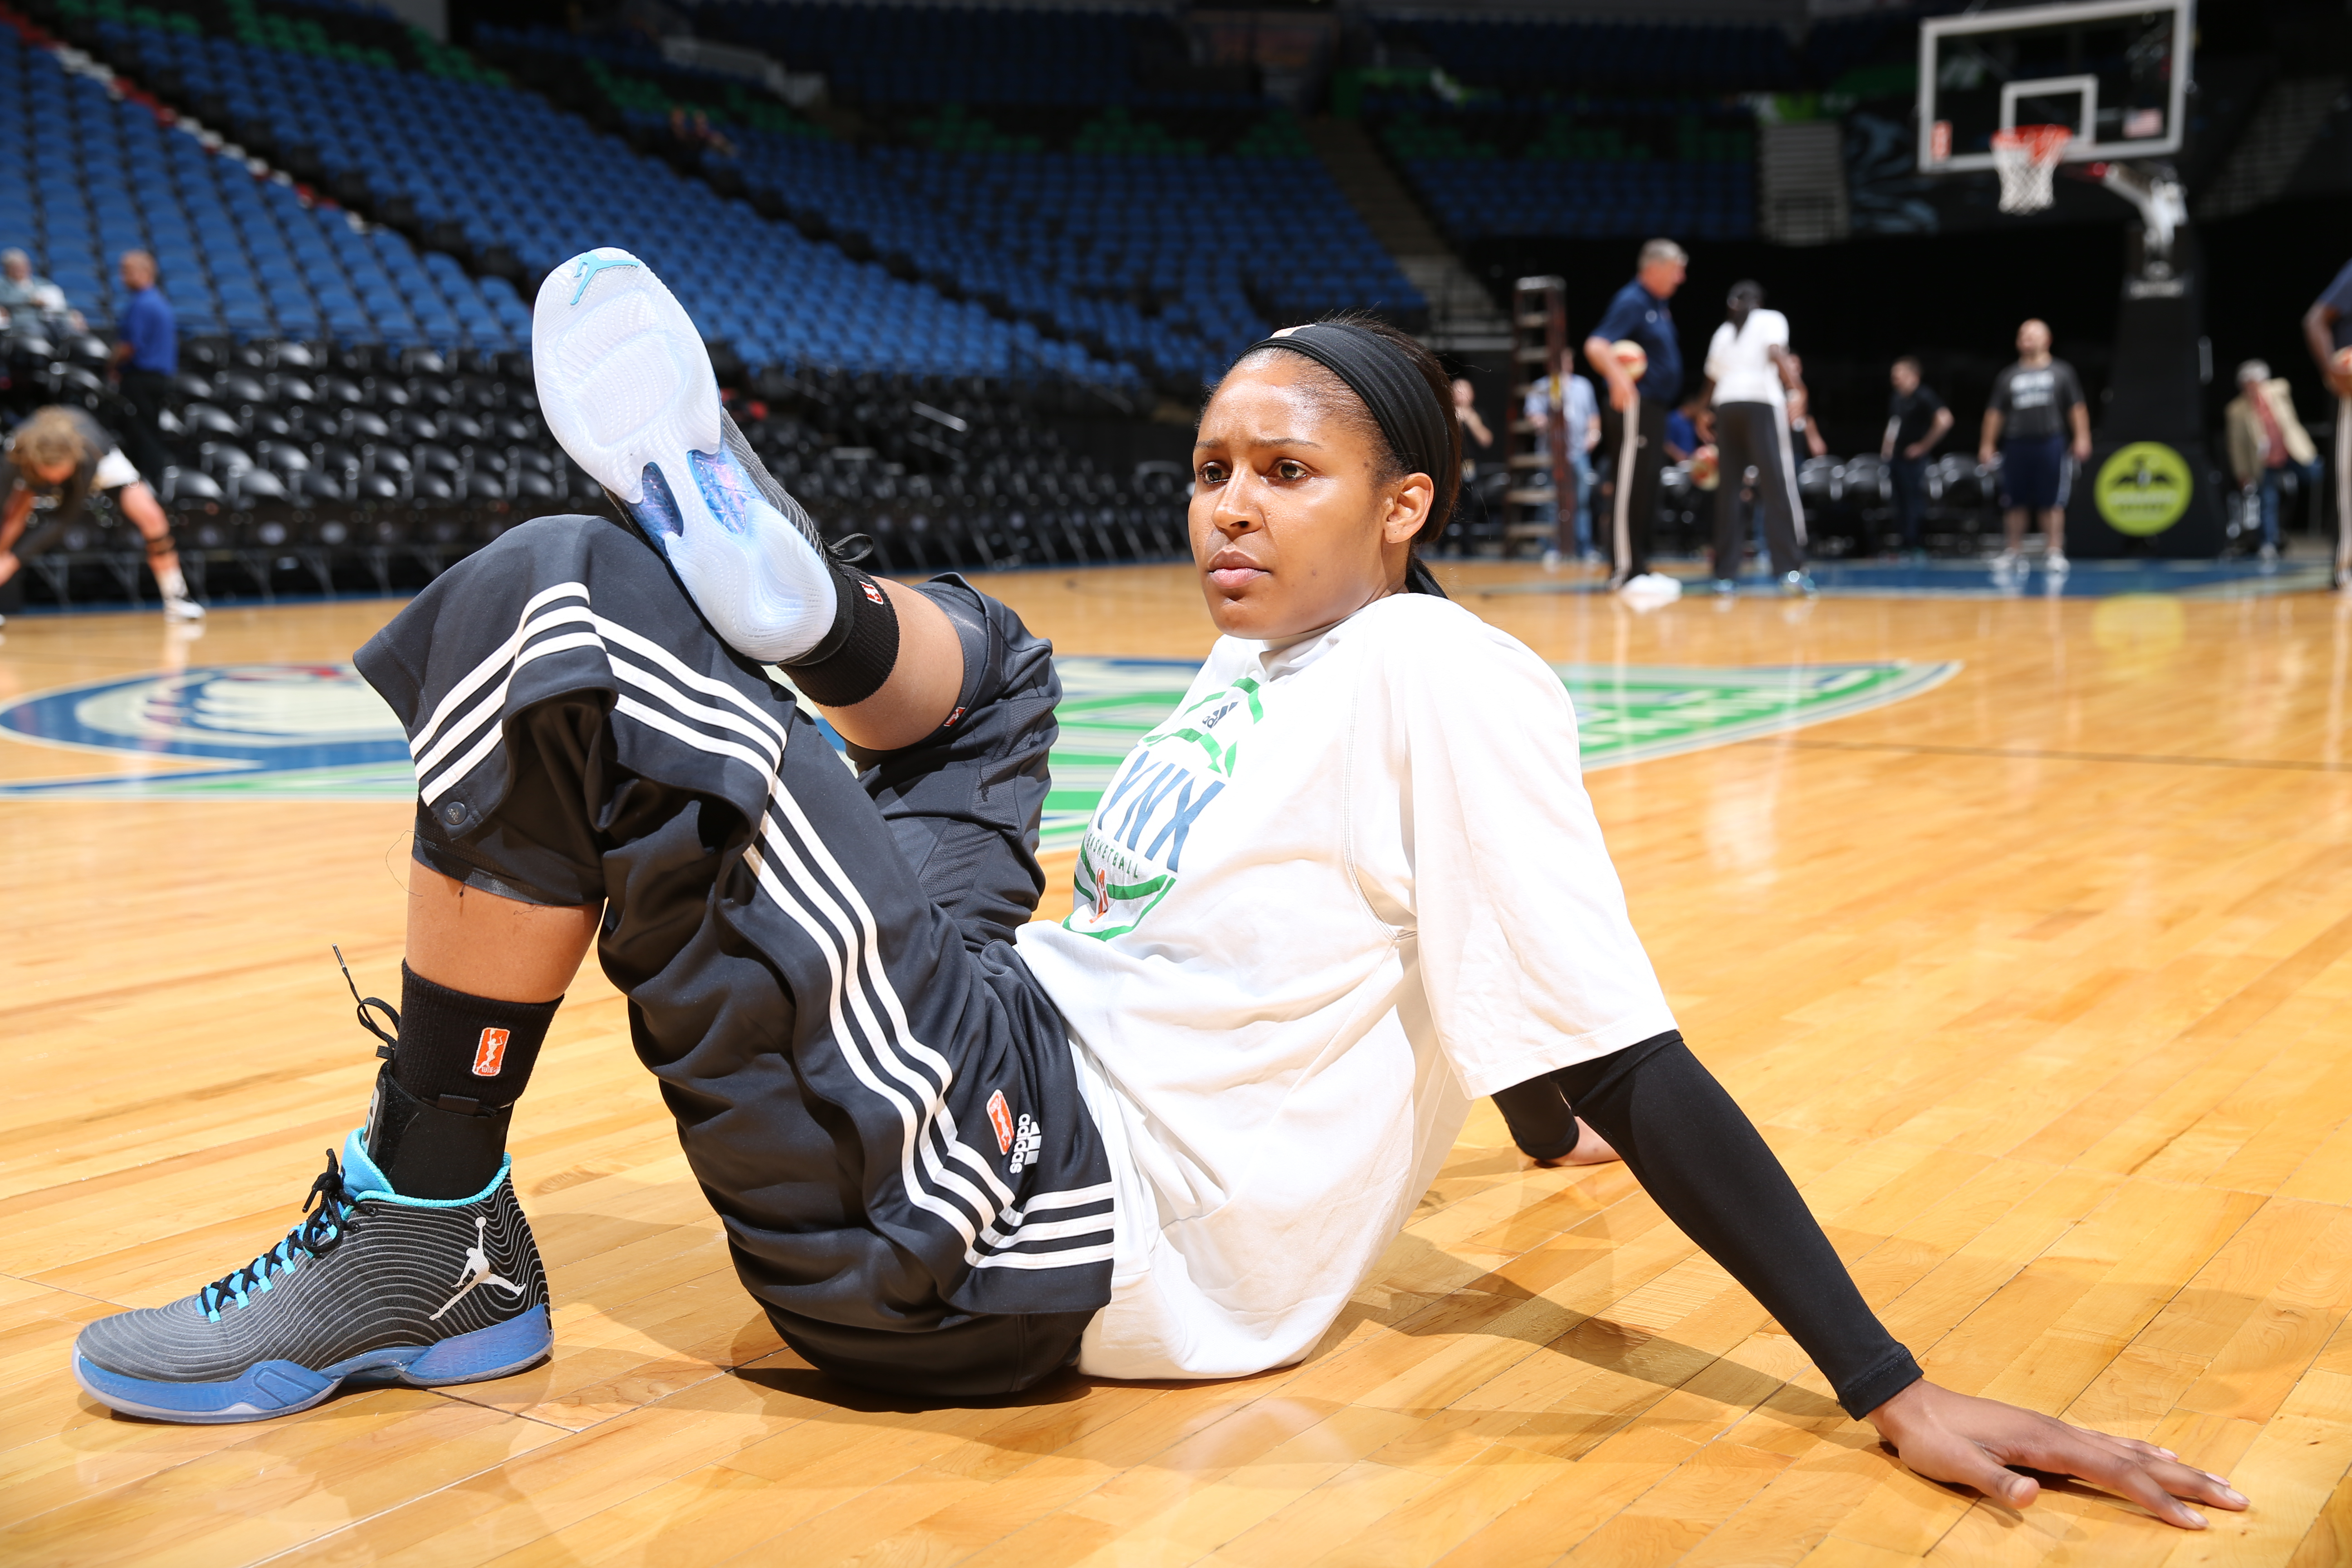 MINNEAPOLIS, MN - JUNE 1:  Maya Moore #23 of the Minnesota Lynx warms up before playing against the New York Liberty on June 1, 2015 at Target Center in Minneapolis, Minnesota. NOTE TO USER: User expressly acknowledges and agrees that, by downloading and or using this Photograph, user is consenting to the terms and conditions of the Getty Images License Agreement. Mandatory Copyright Notice: Copyright 2015 NBAE (Photo by David Sherman/NBAE via Getty Images)